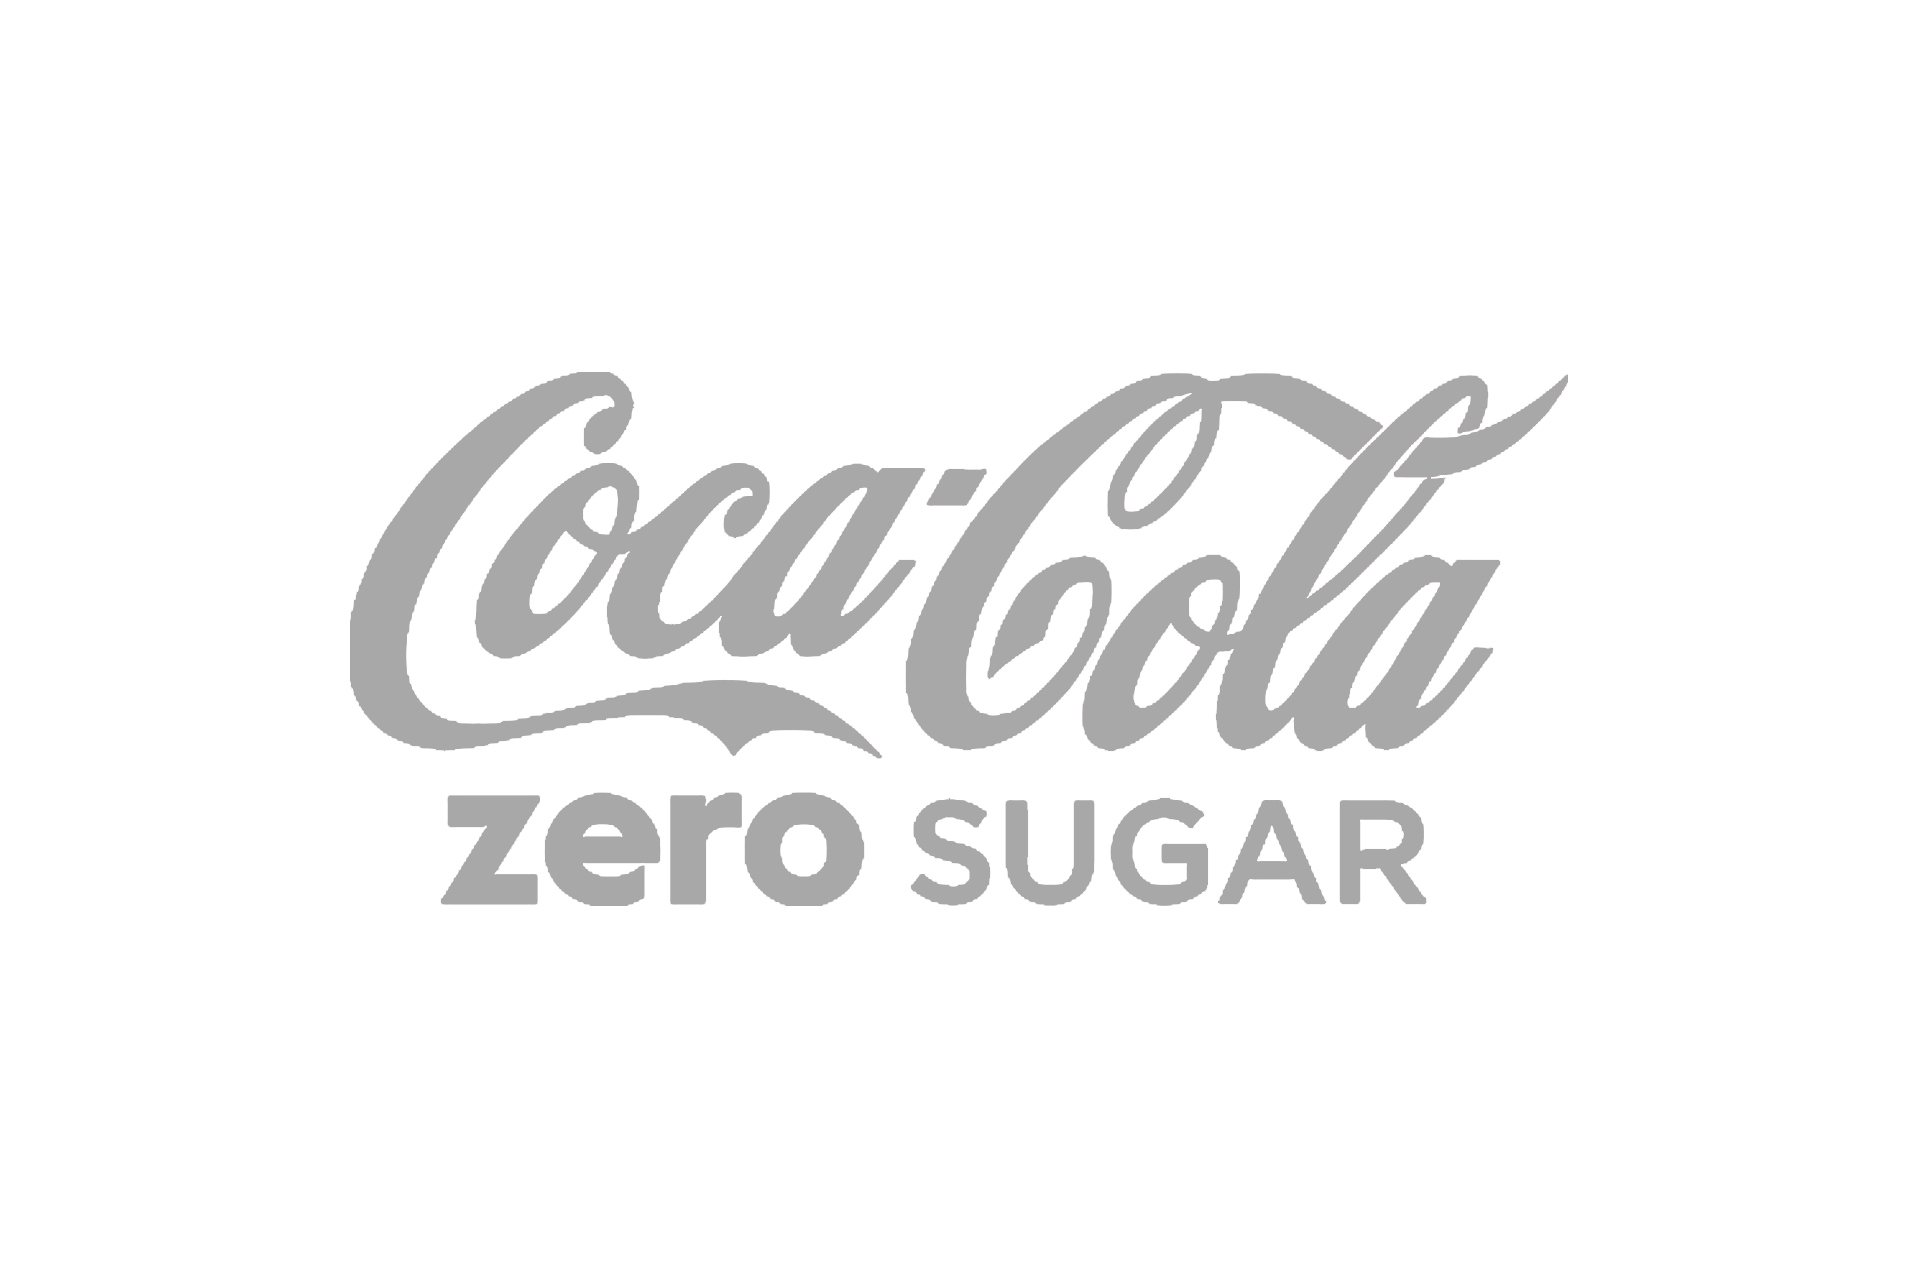 coca cola zero sugar grey